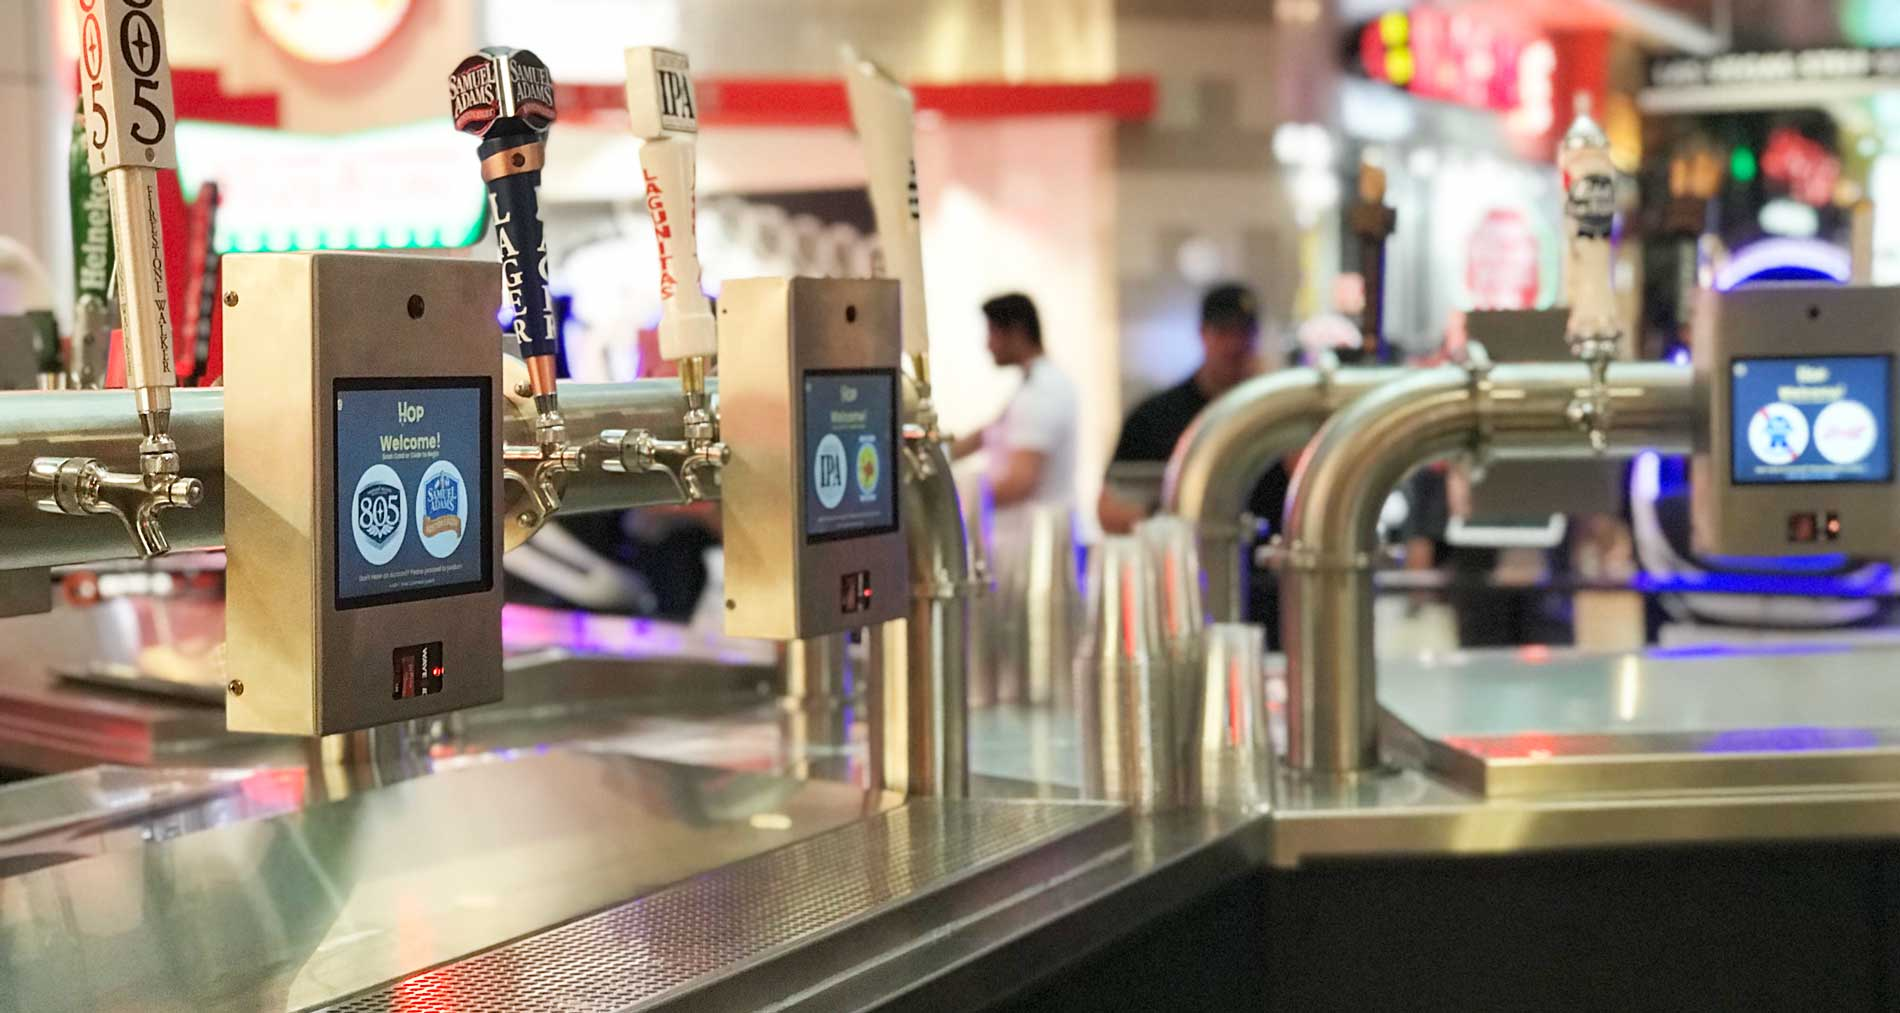 IoT App Development: How We Built a Facial Recognition-Powered Beer Kiosk